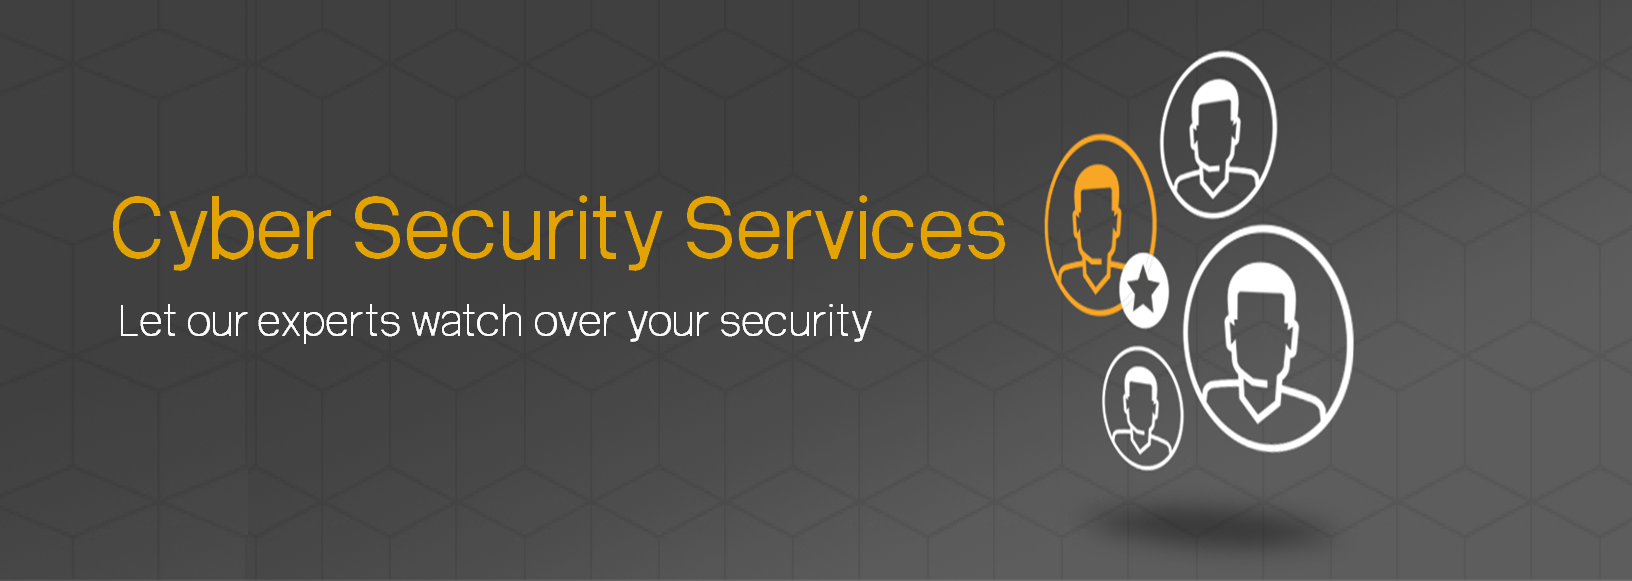 Cyber Security Services Product